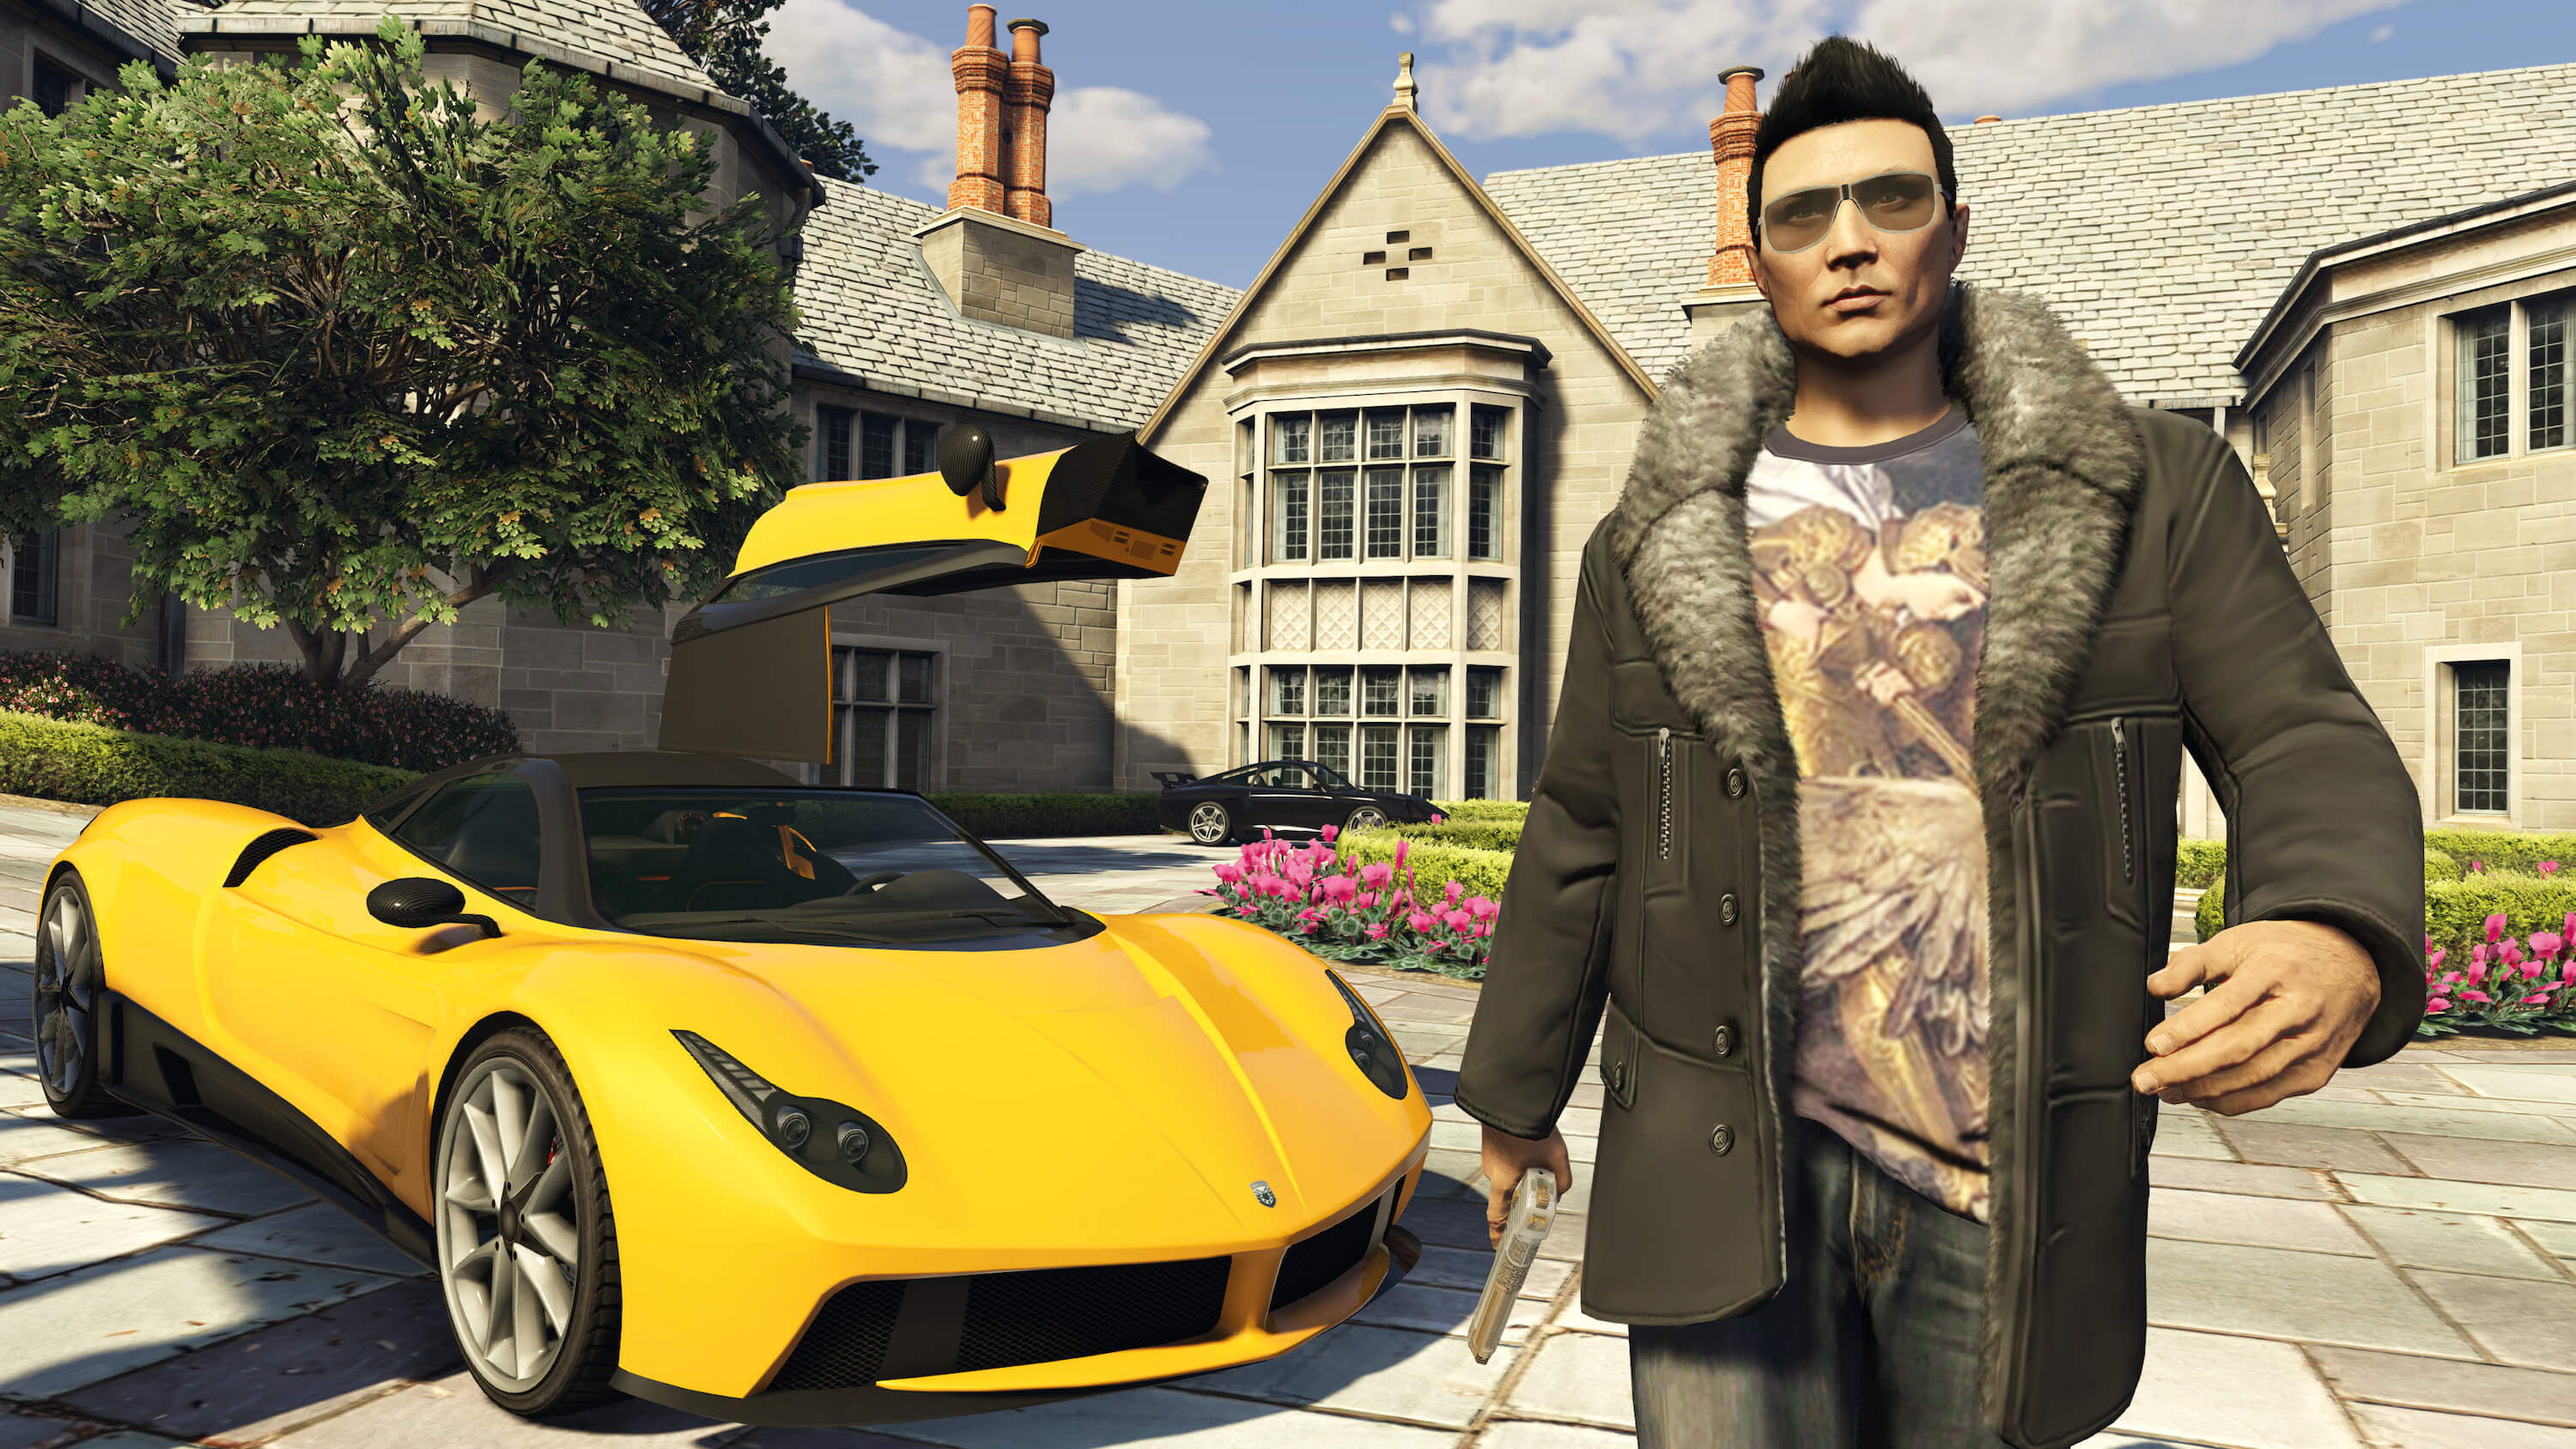 The Fastest Cars in GTA 5 You Must Know [Top 5 vehicles]